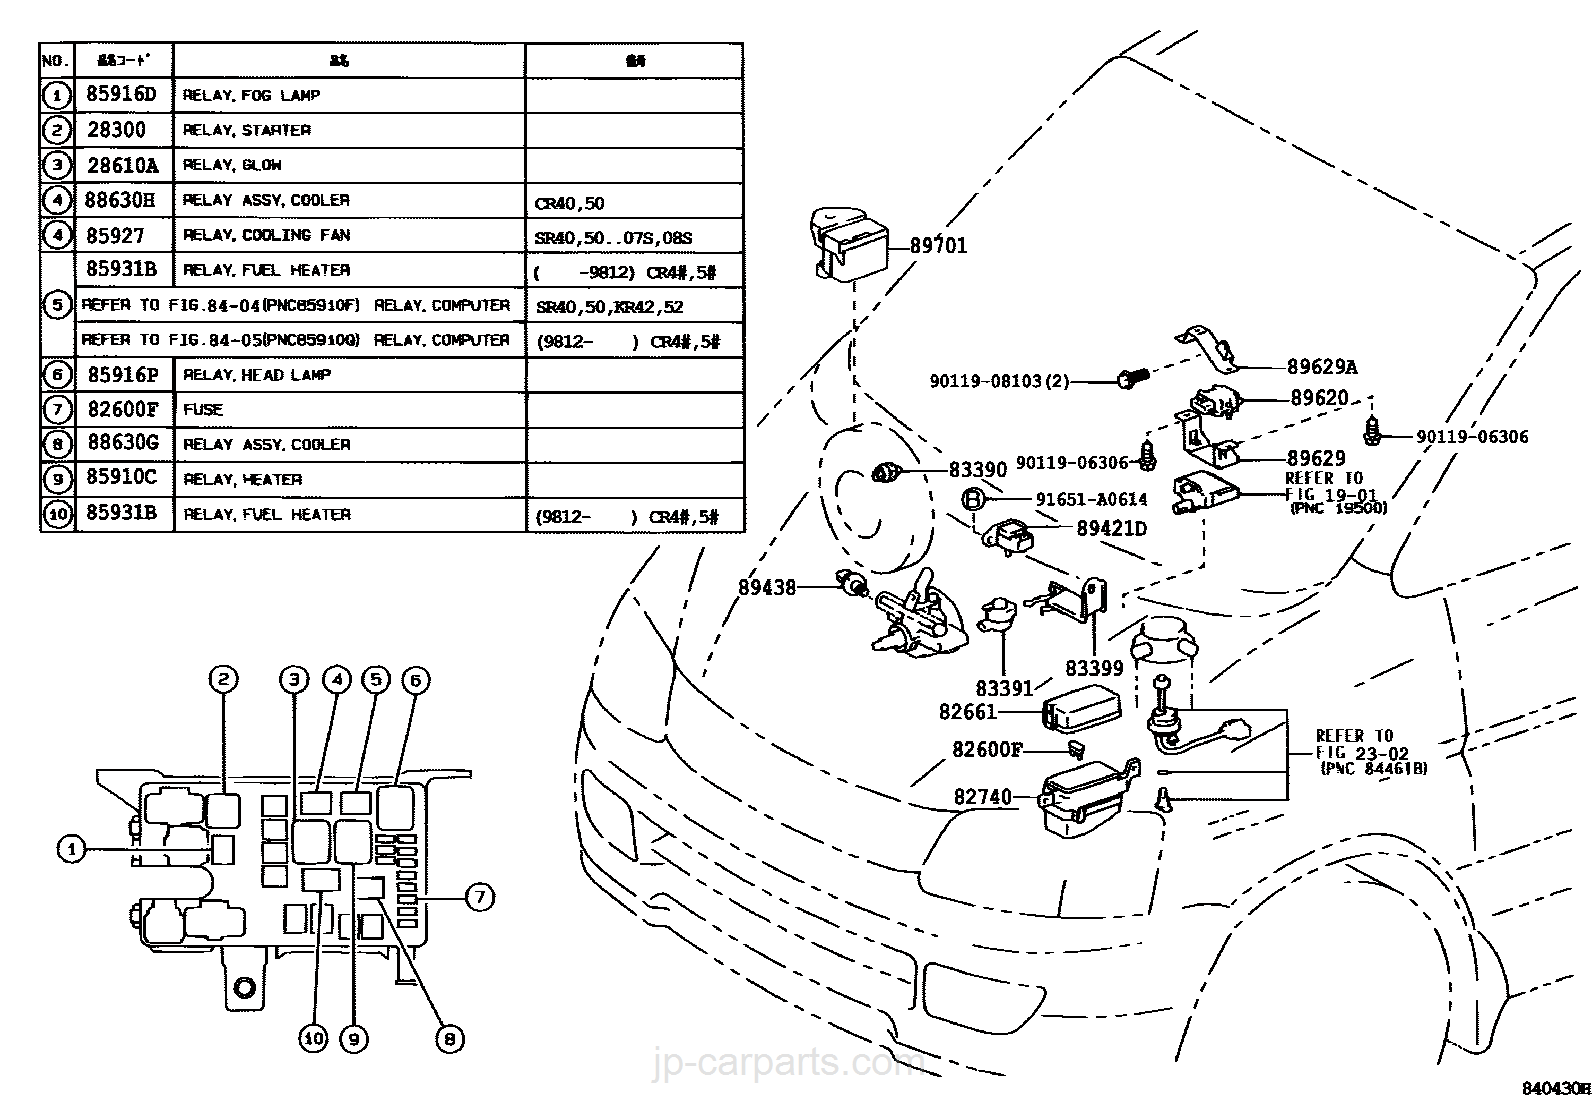 Toyota Kr42 Wiring Diagram Diagrams Jp Switch Relay Computer Part List Carparts Com Rh Liteace